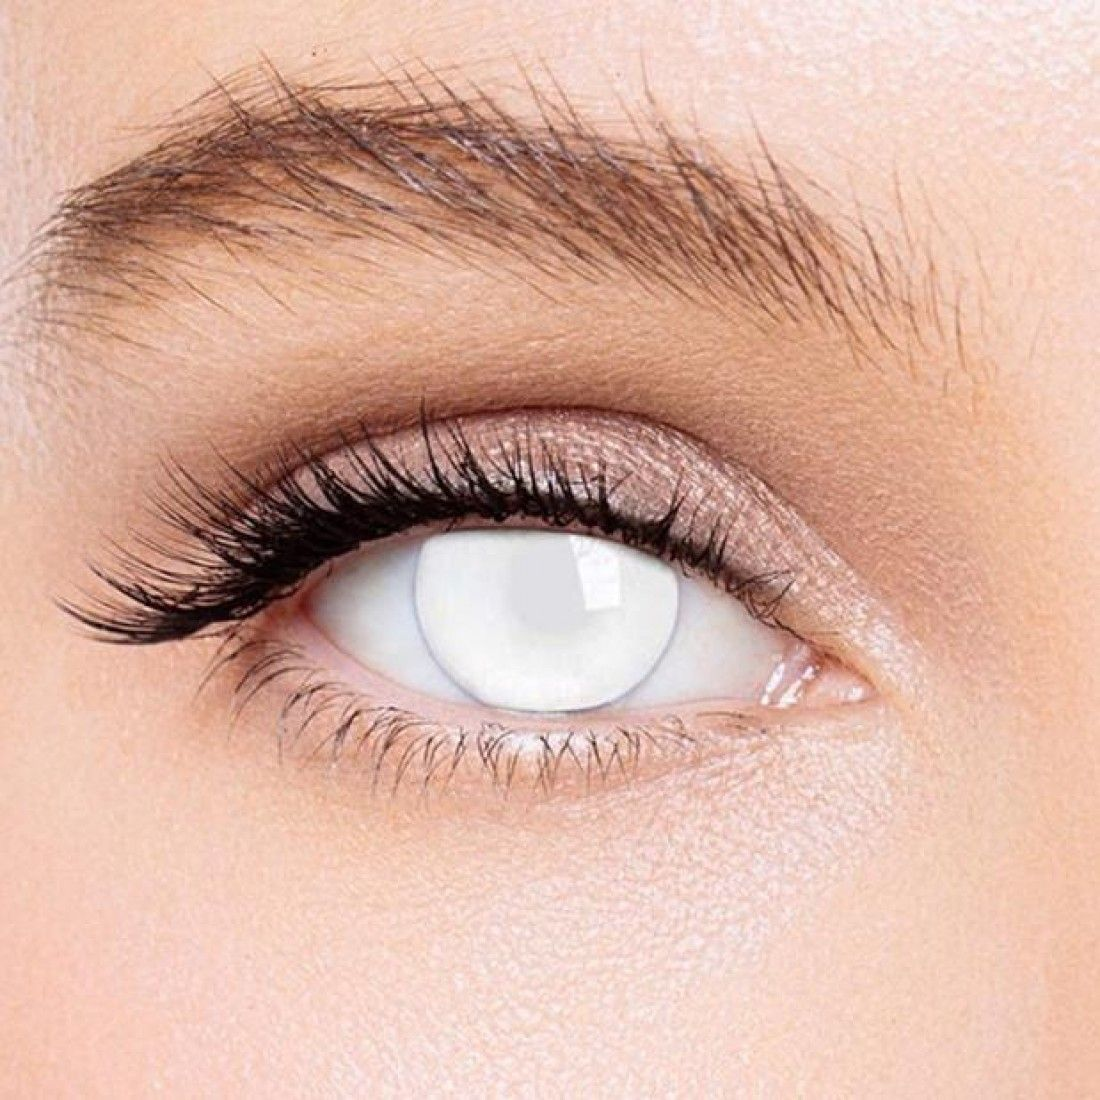 Kateeye Blind White Special Effect Colored Contact Lenses In 2020 Contact Lenses Colored Halloween Contact Lenses White Contact Lenses